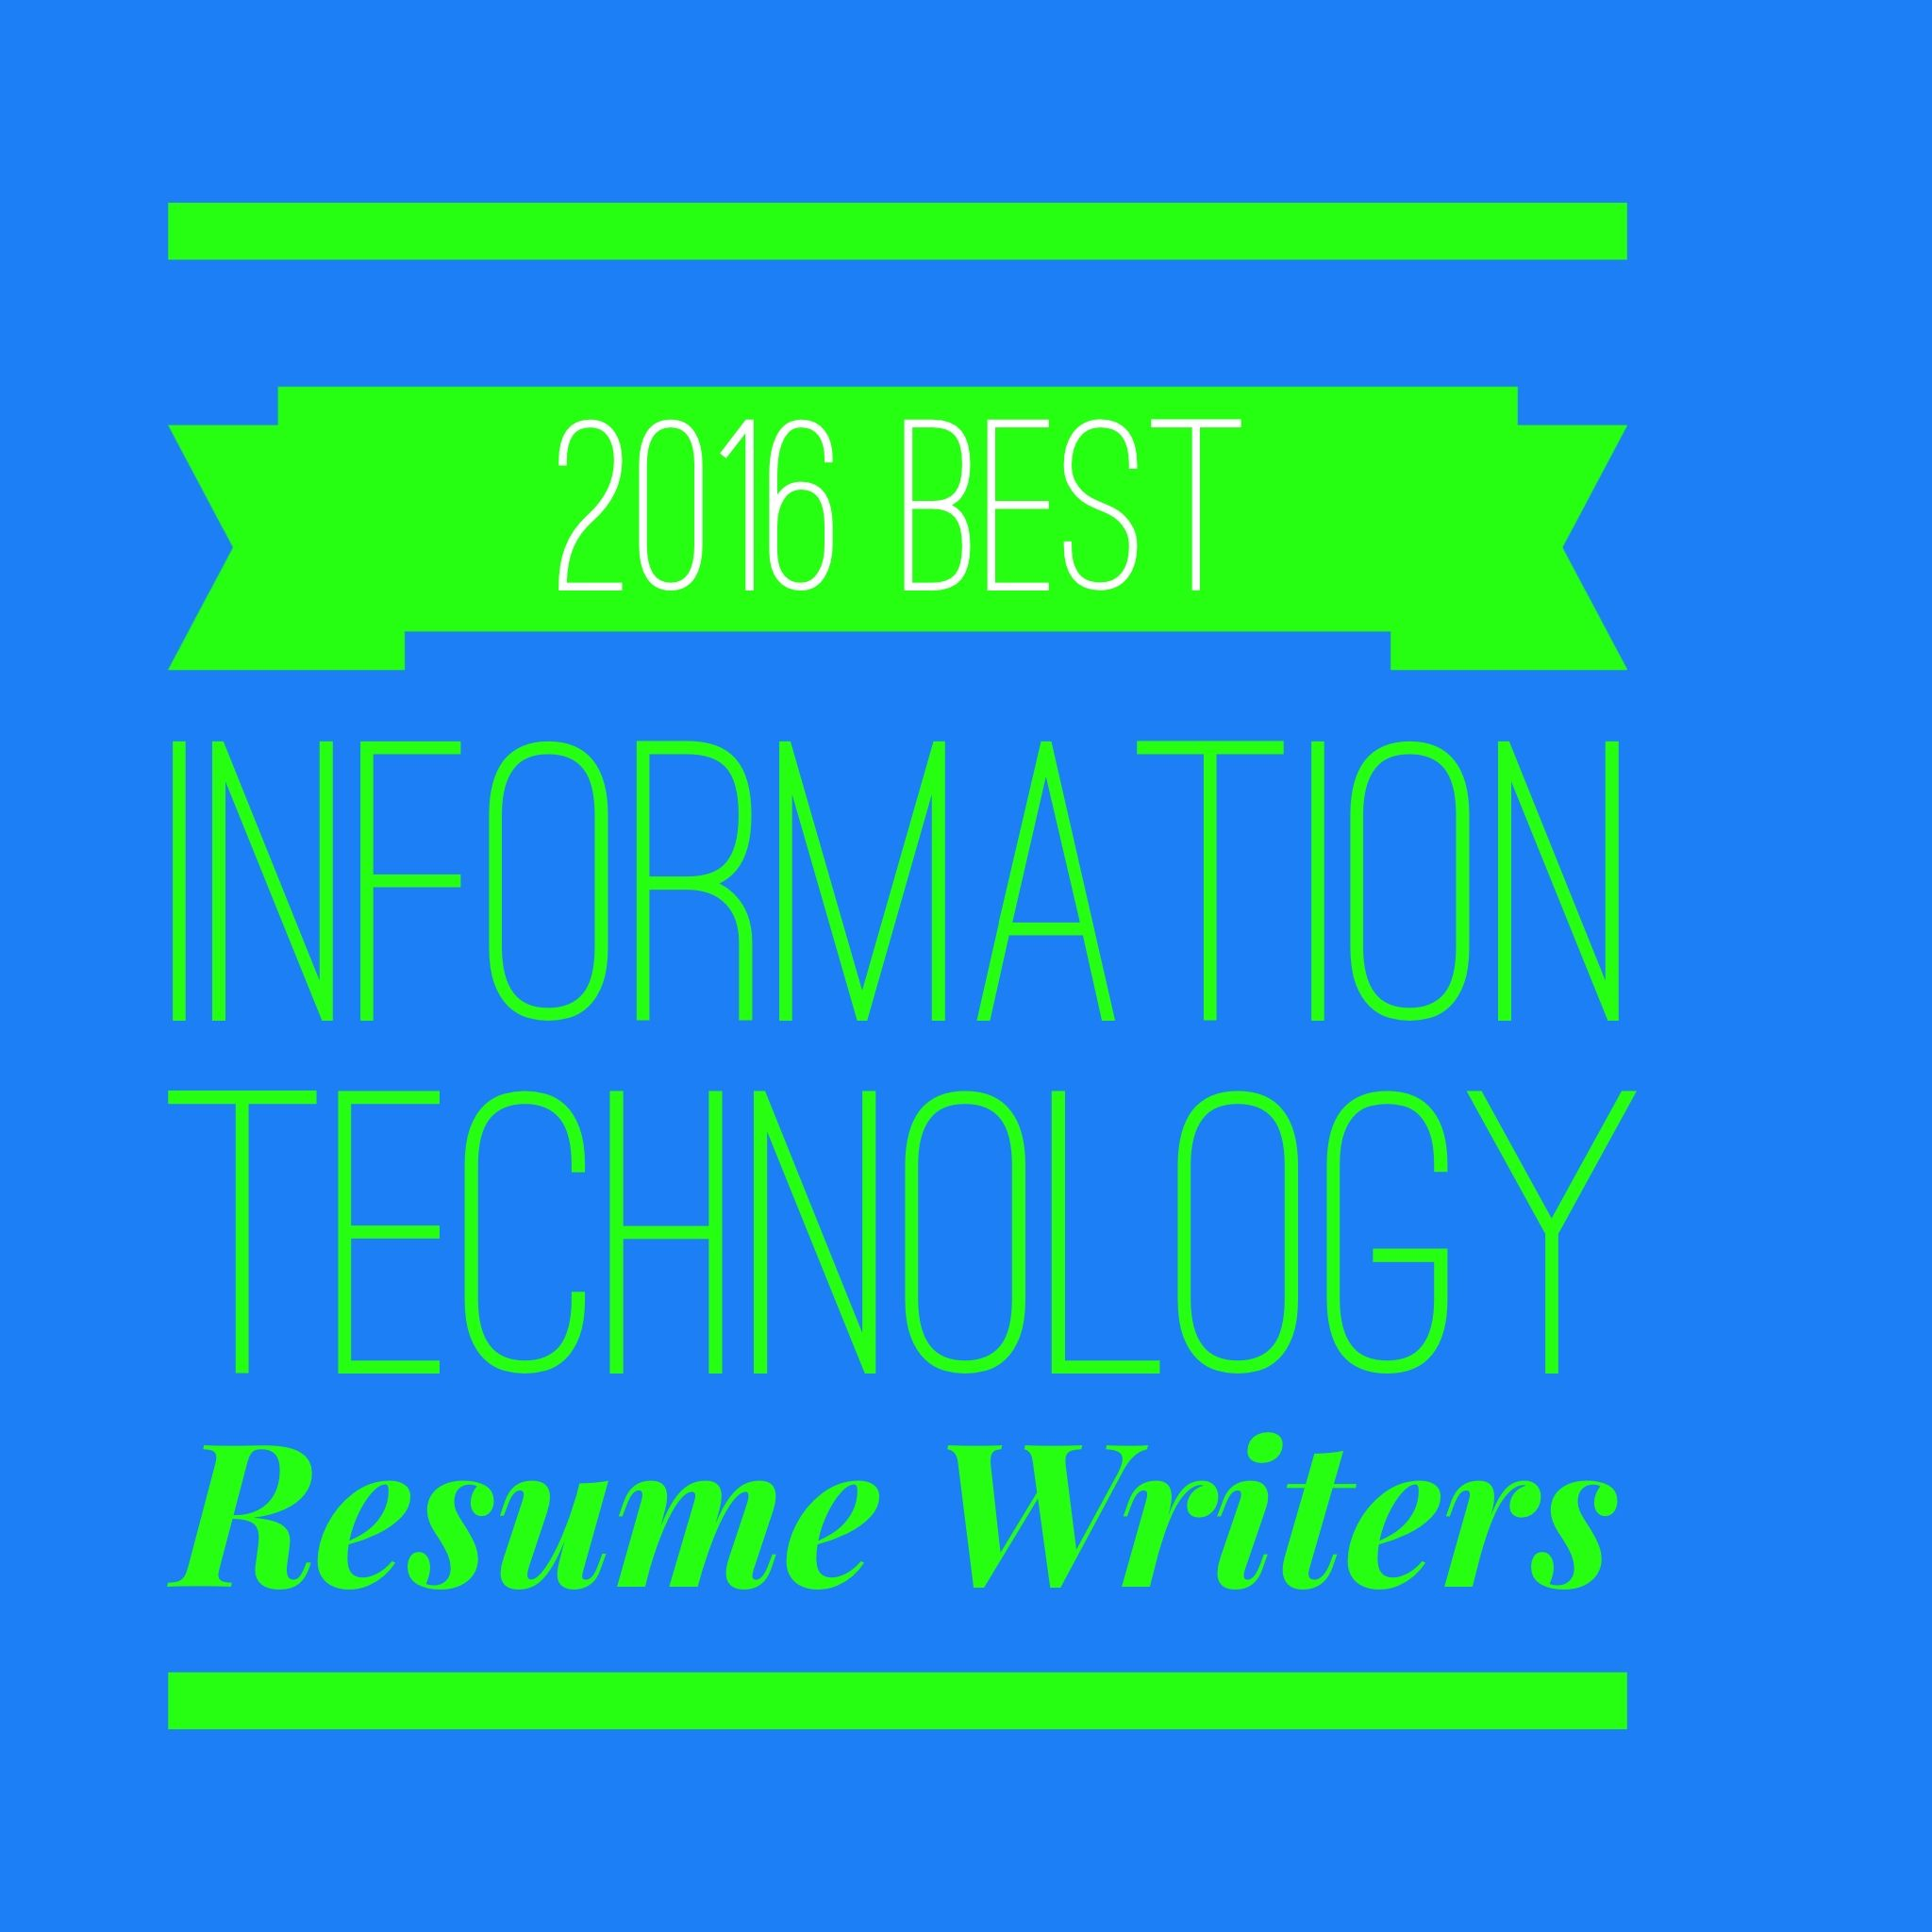 here are the 2016 best information technology resume writers to launch your information technology job search the top resume writers get proven results - Resume Writing For Science Jobs